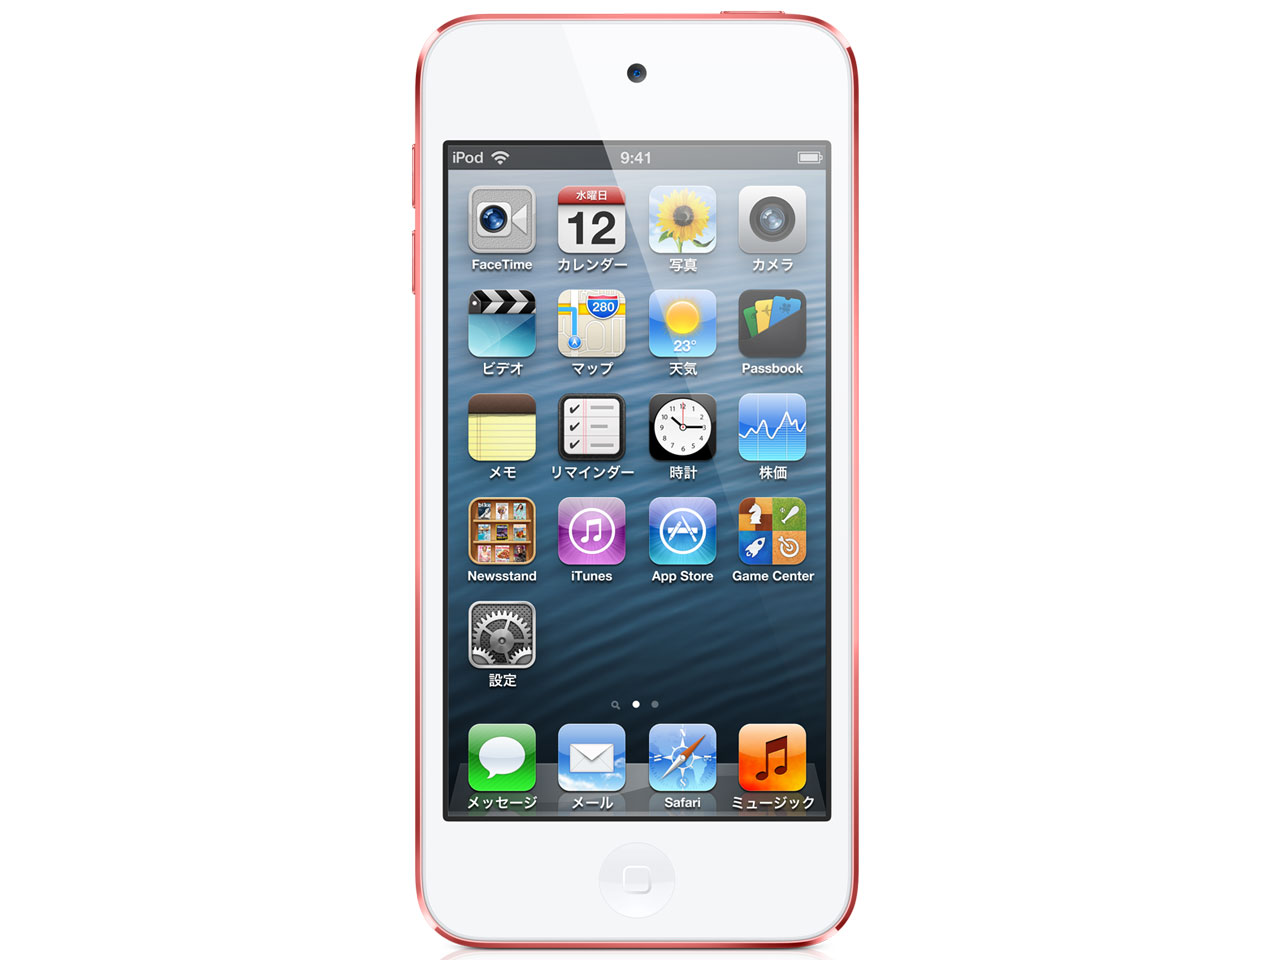 iPod touch MC903J/A [32GB ピンク] の製品画像